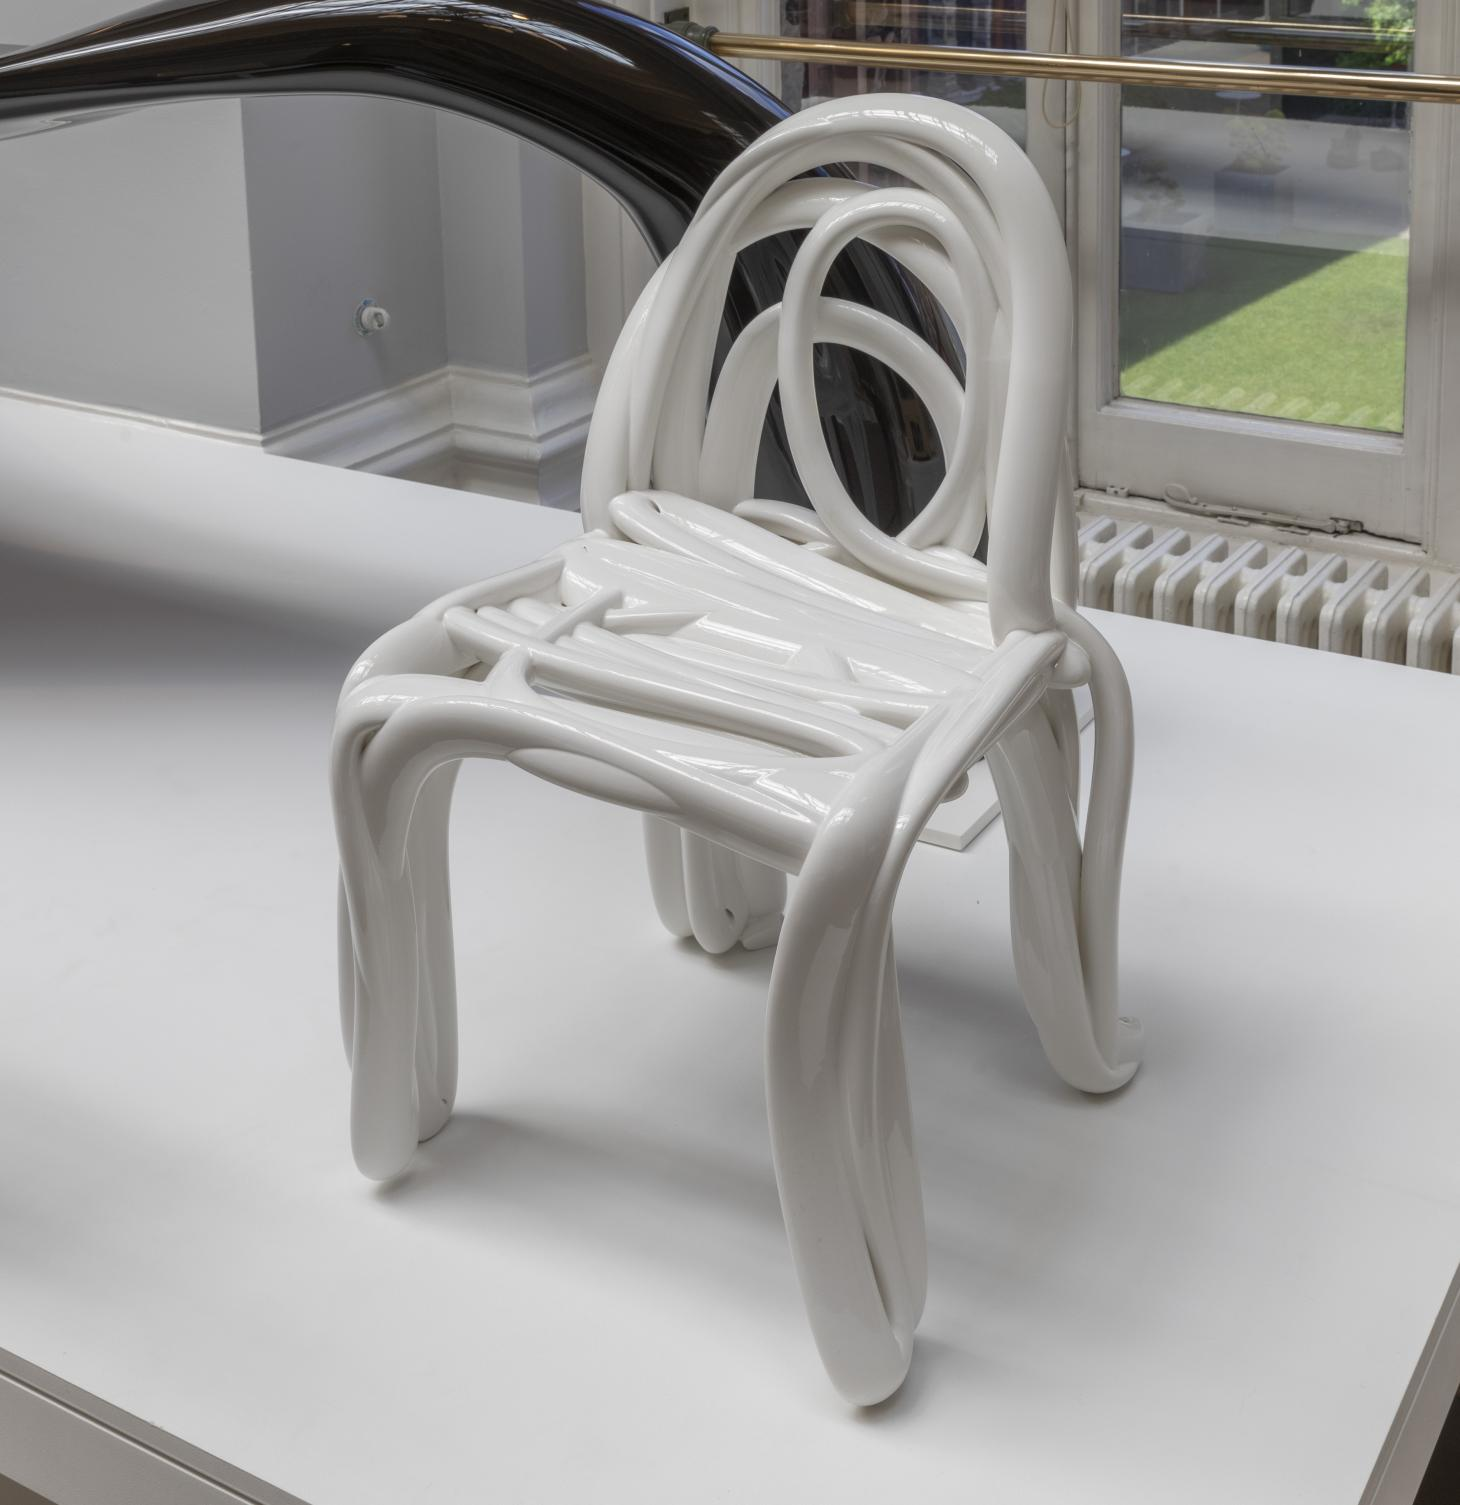 A white chair by front made with a process whose result resembles a wriggly hand sketch